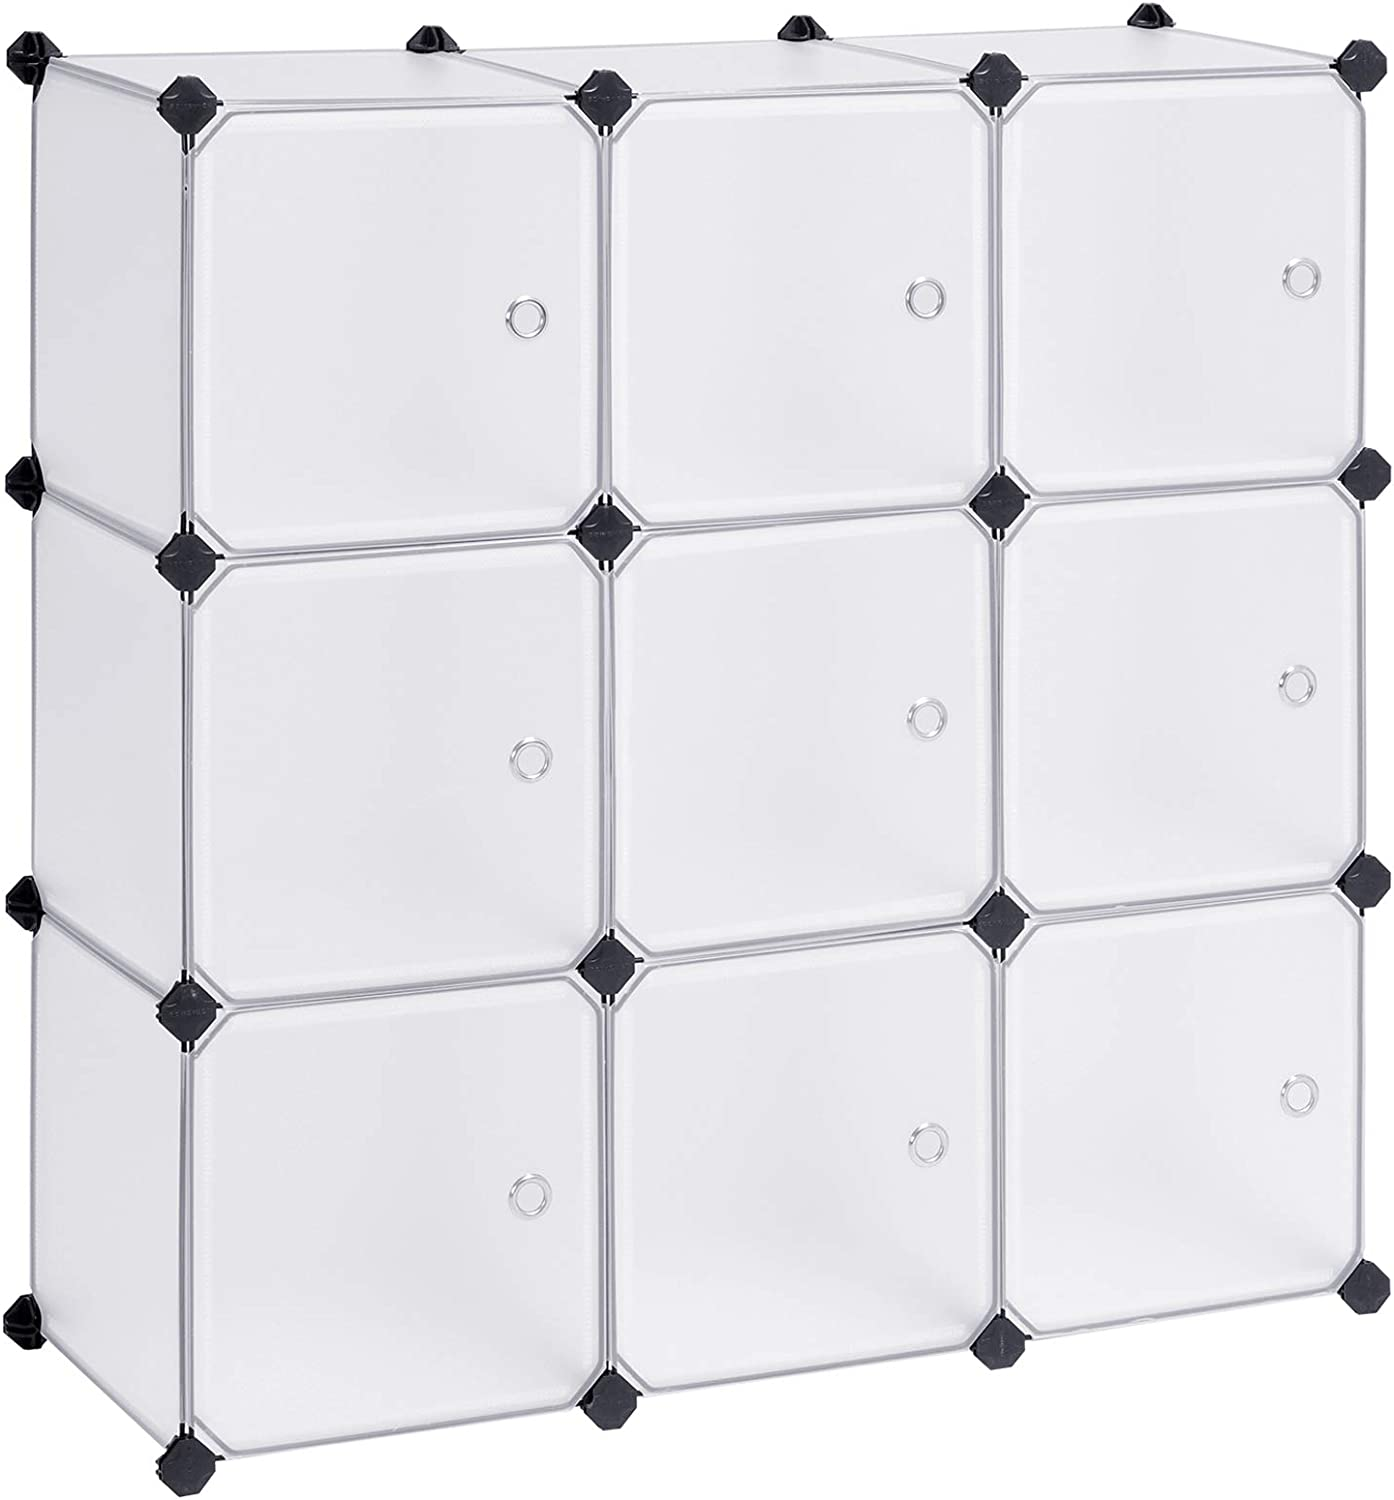 SONGMICS Cube Storage Organizer, 9-Cube DIY Plastic Closet Cabinet, Modular Bookcase, Storage Shelving with Doors for Bedroom, Living Room, Office, 36.7 L x 12.2 W x 36.7 H Inches, White ULPC116WSV1